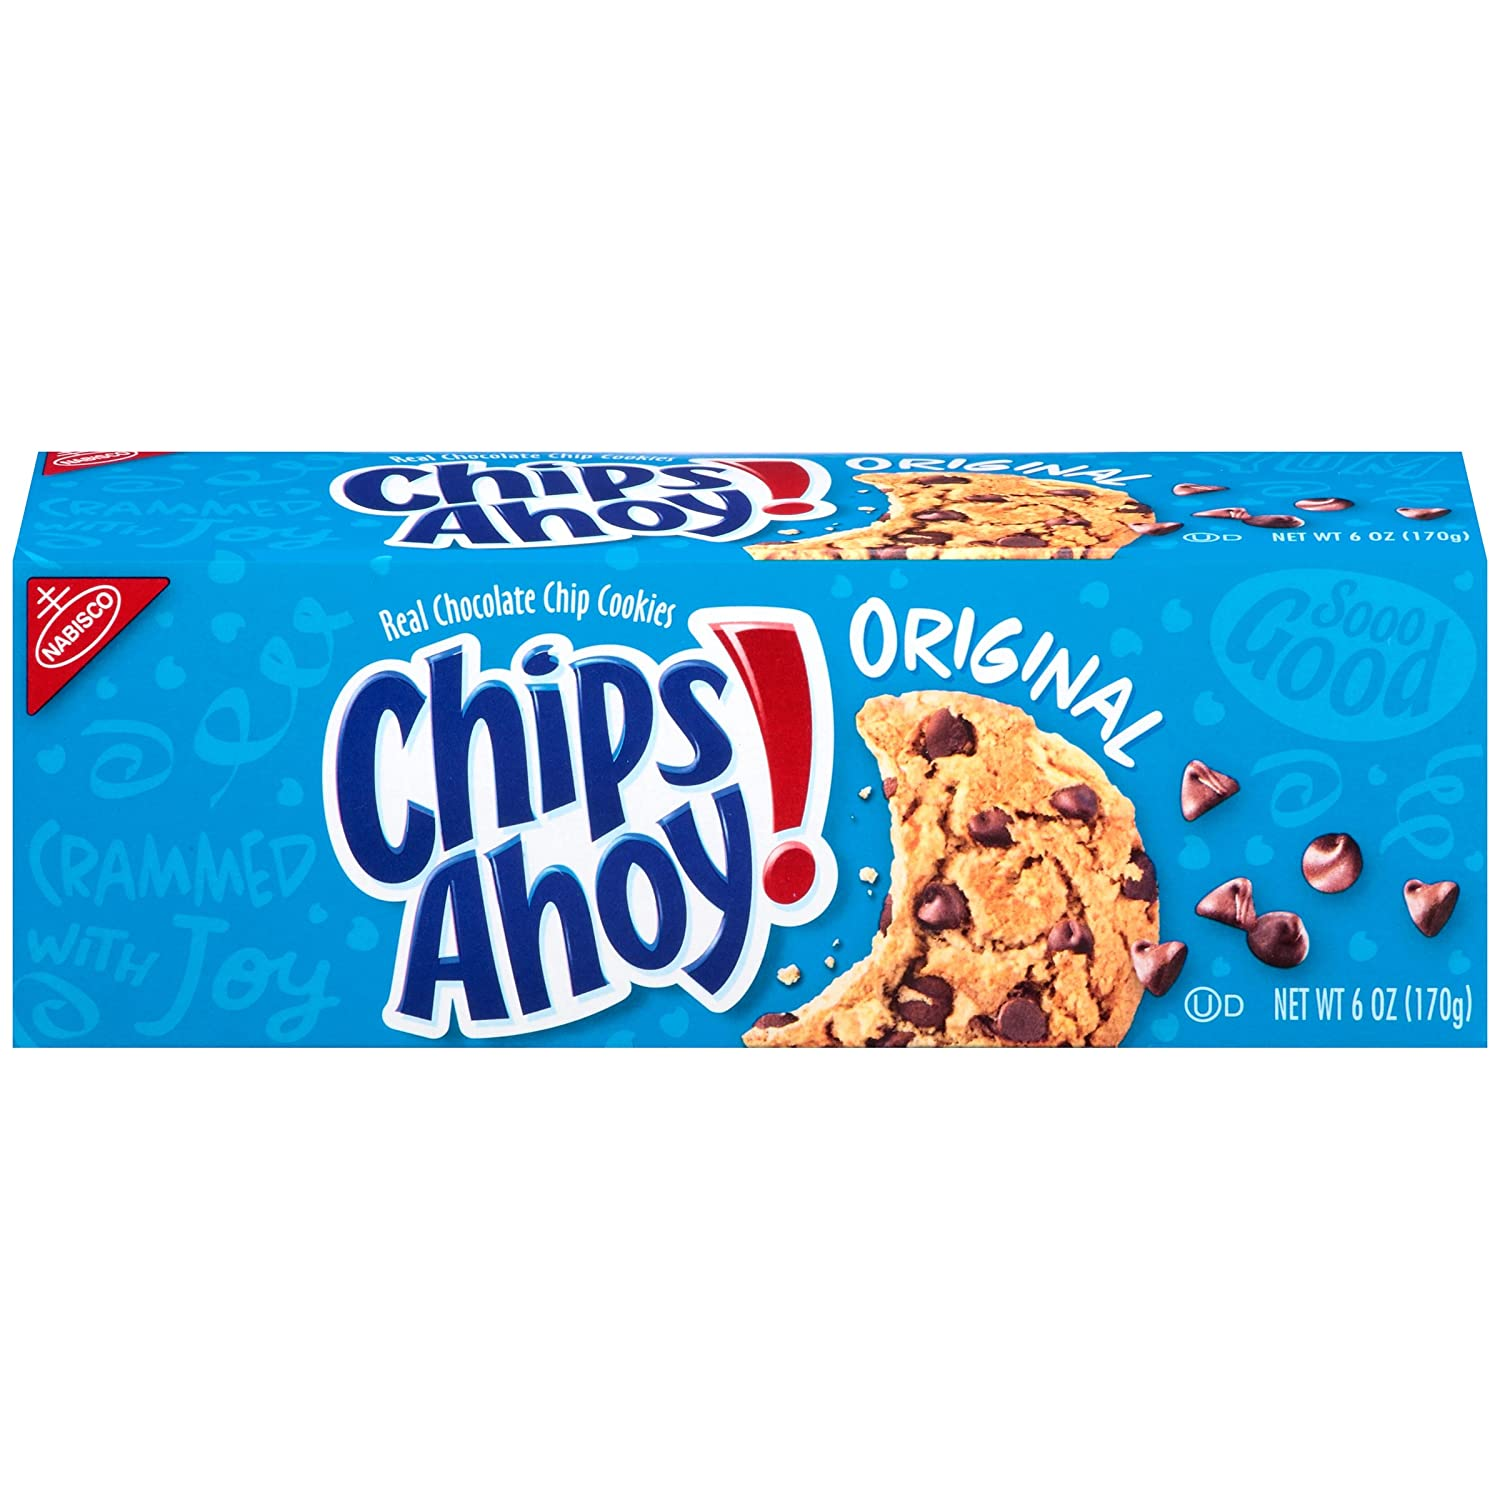 Chips Ahoy! Cookies Original (6oz box)